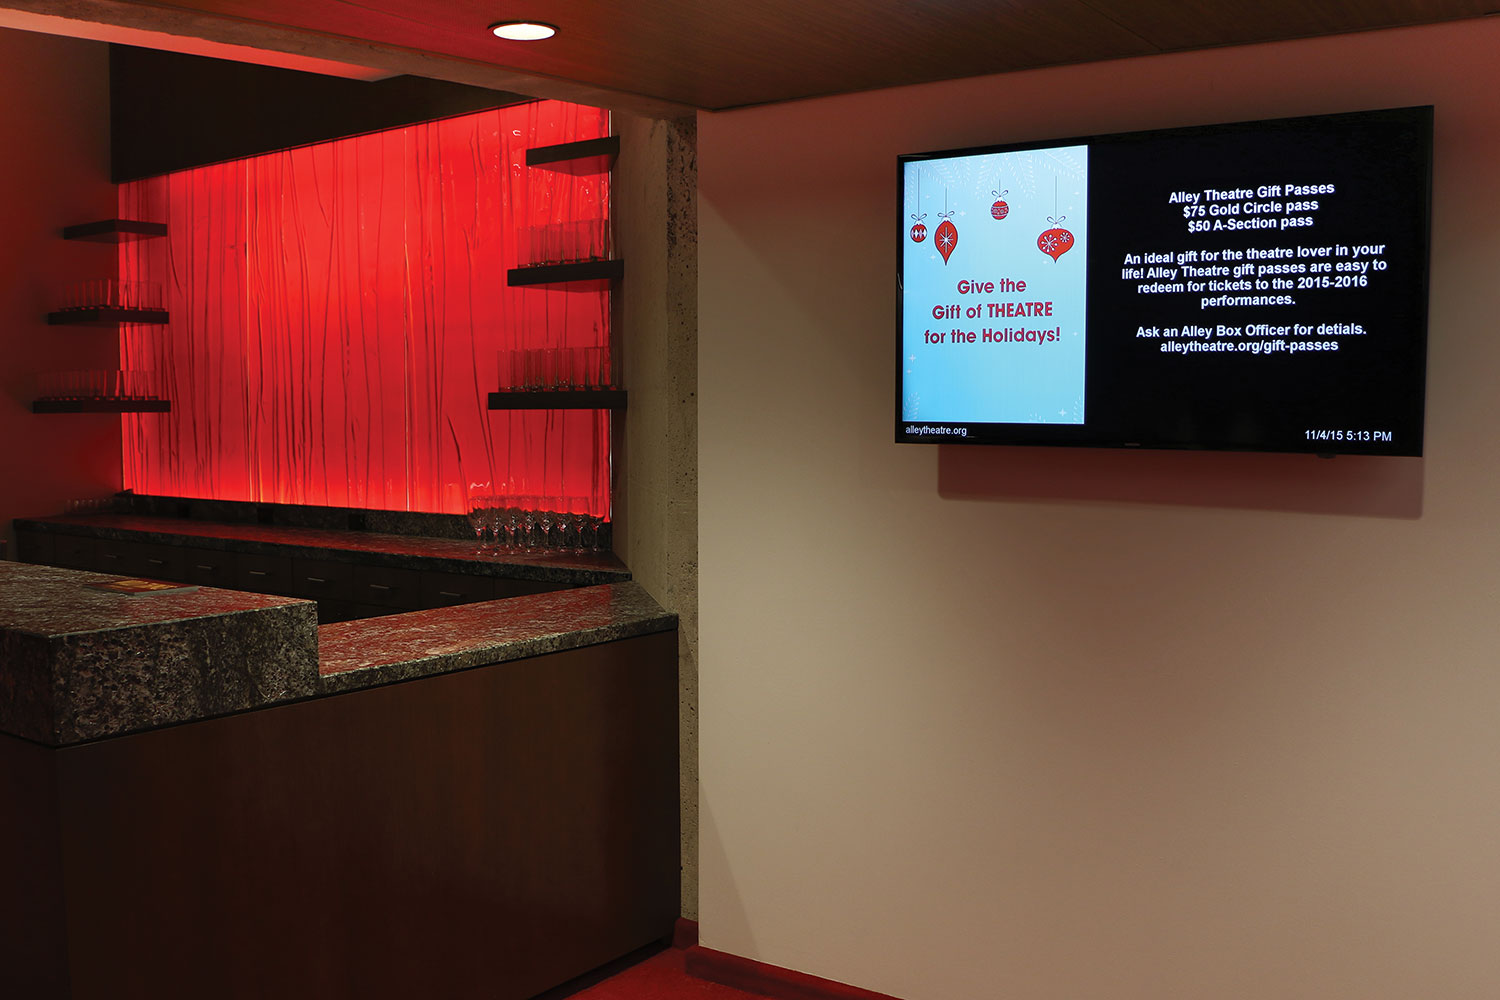 Large LED displays were installed in conjunction with a digital signage system to complement the renovated box office and lobby areas.